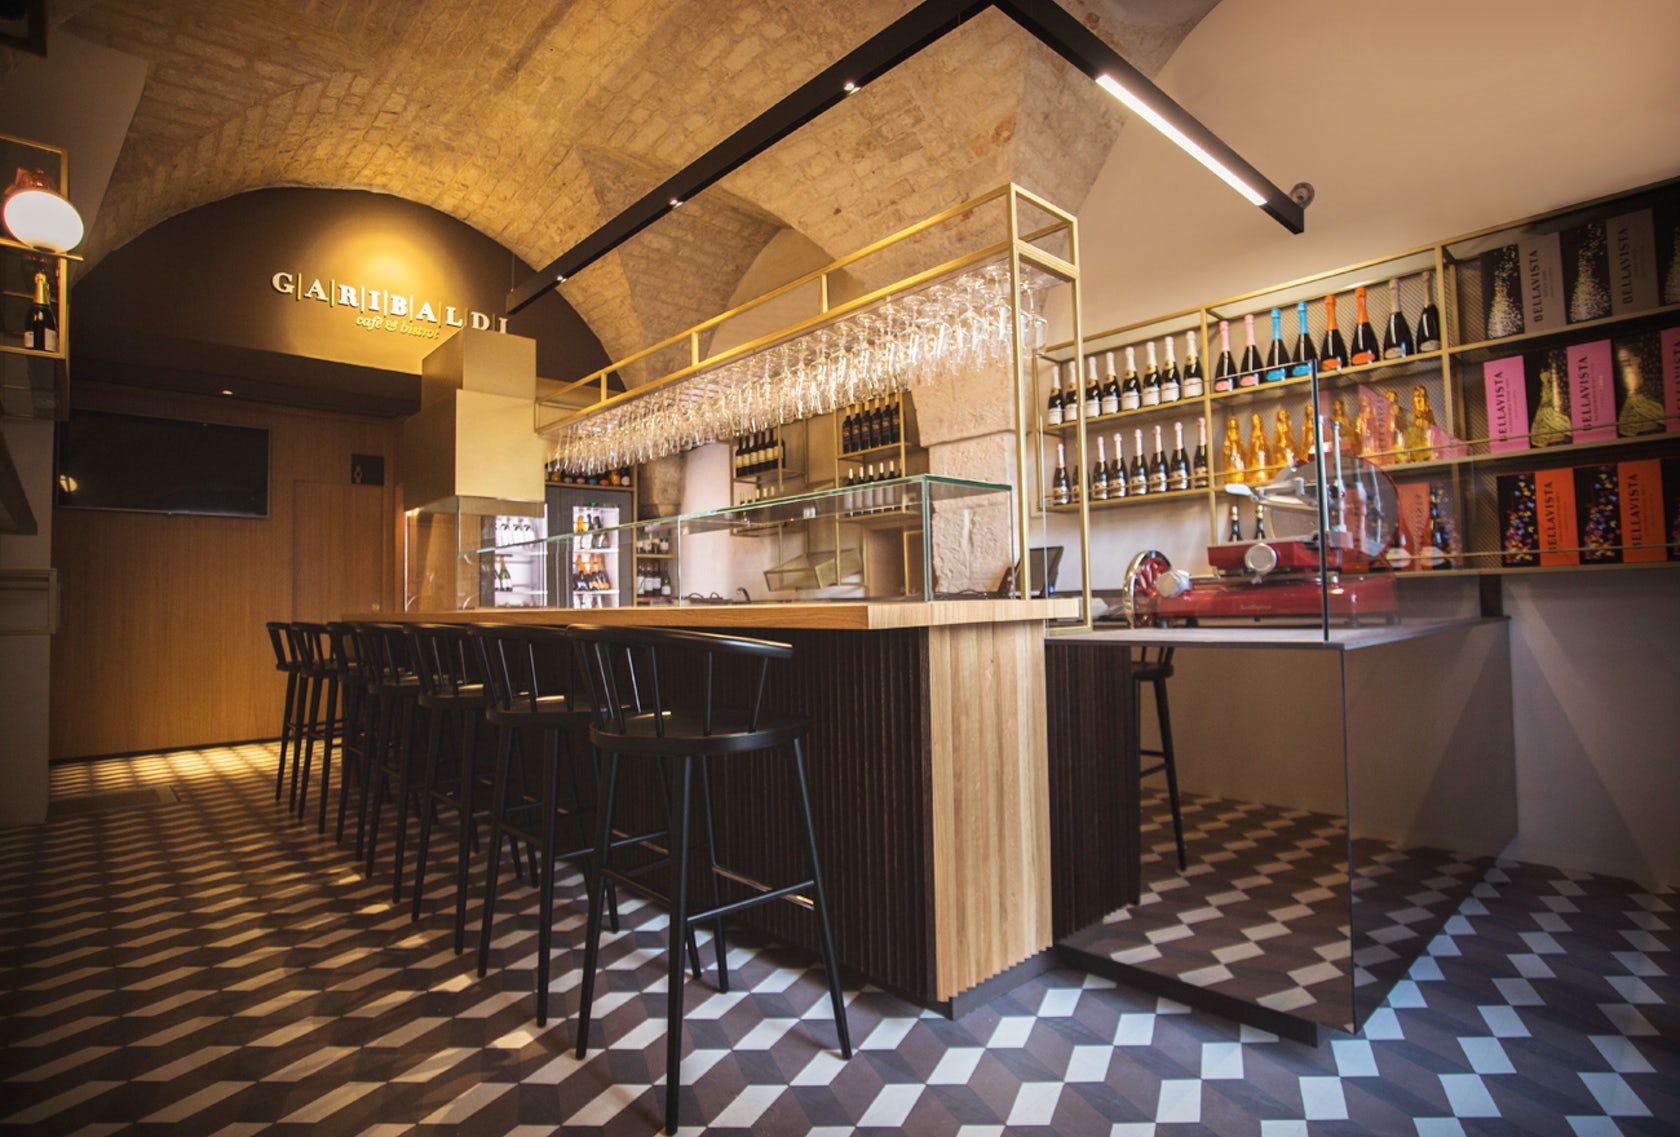 Garibaldi caf bistrot architizer for Arredo bar design